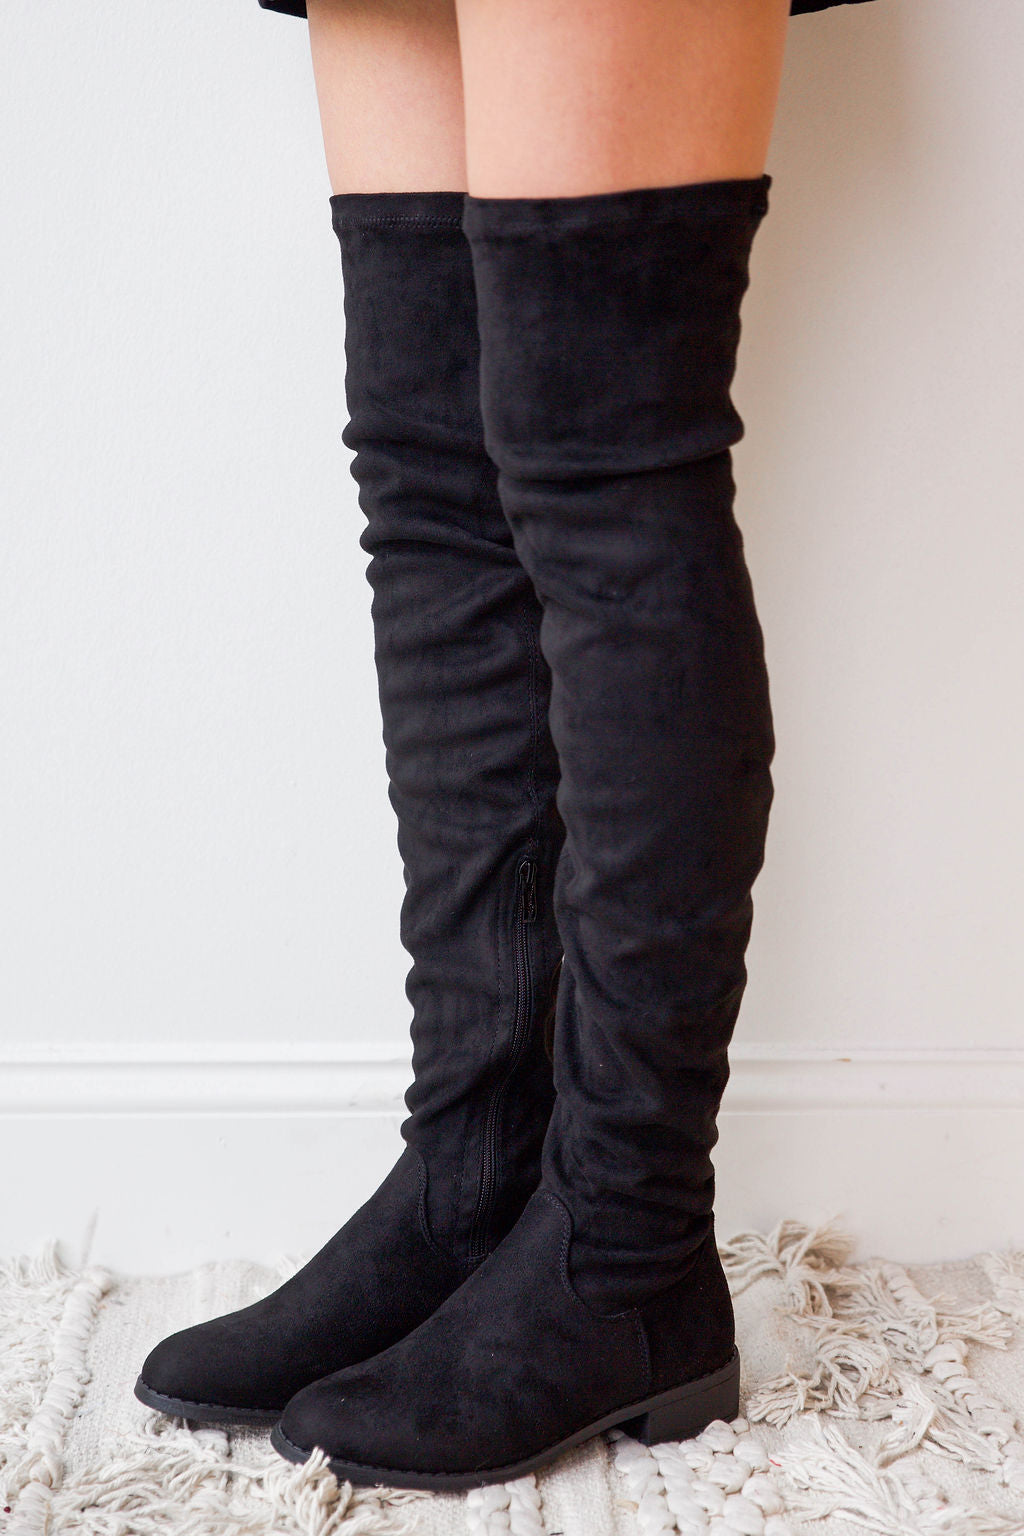 [shop name], hand up over the knee boot